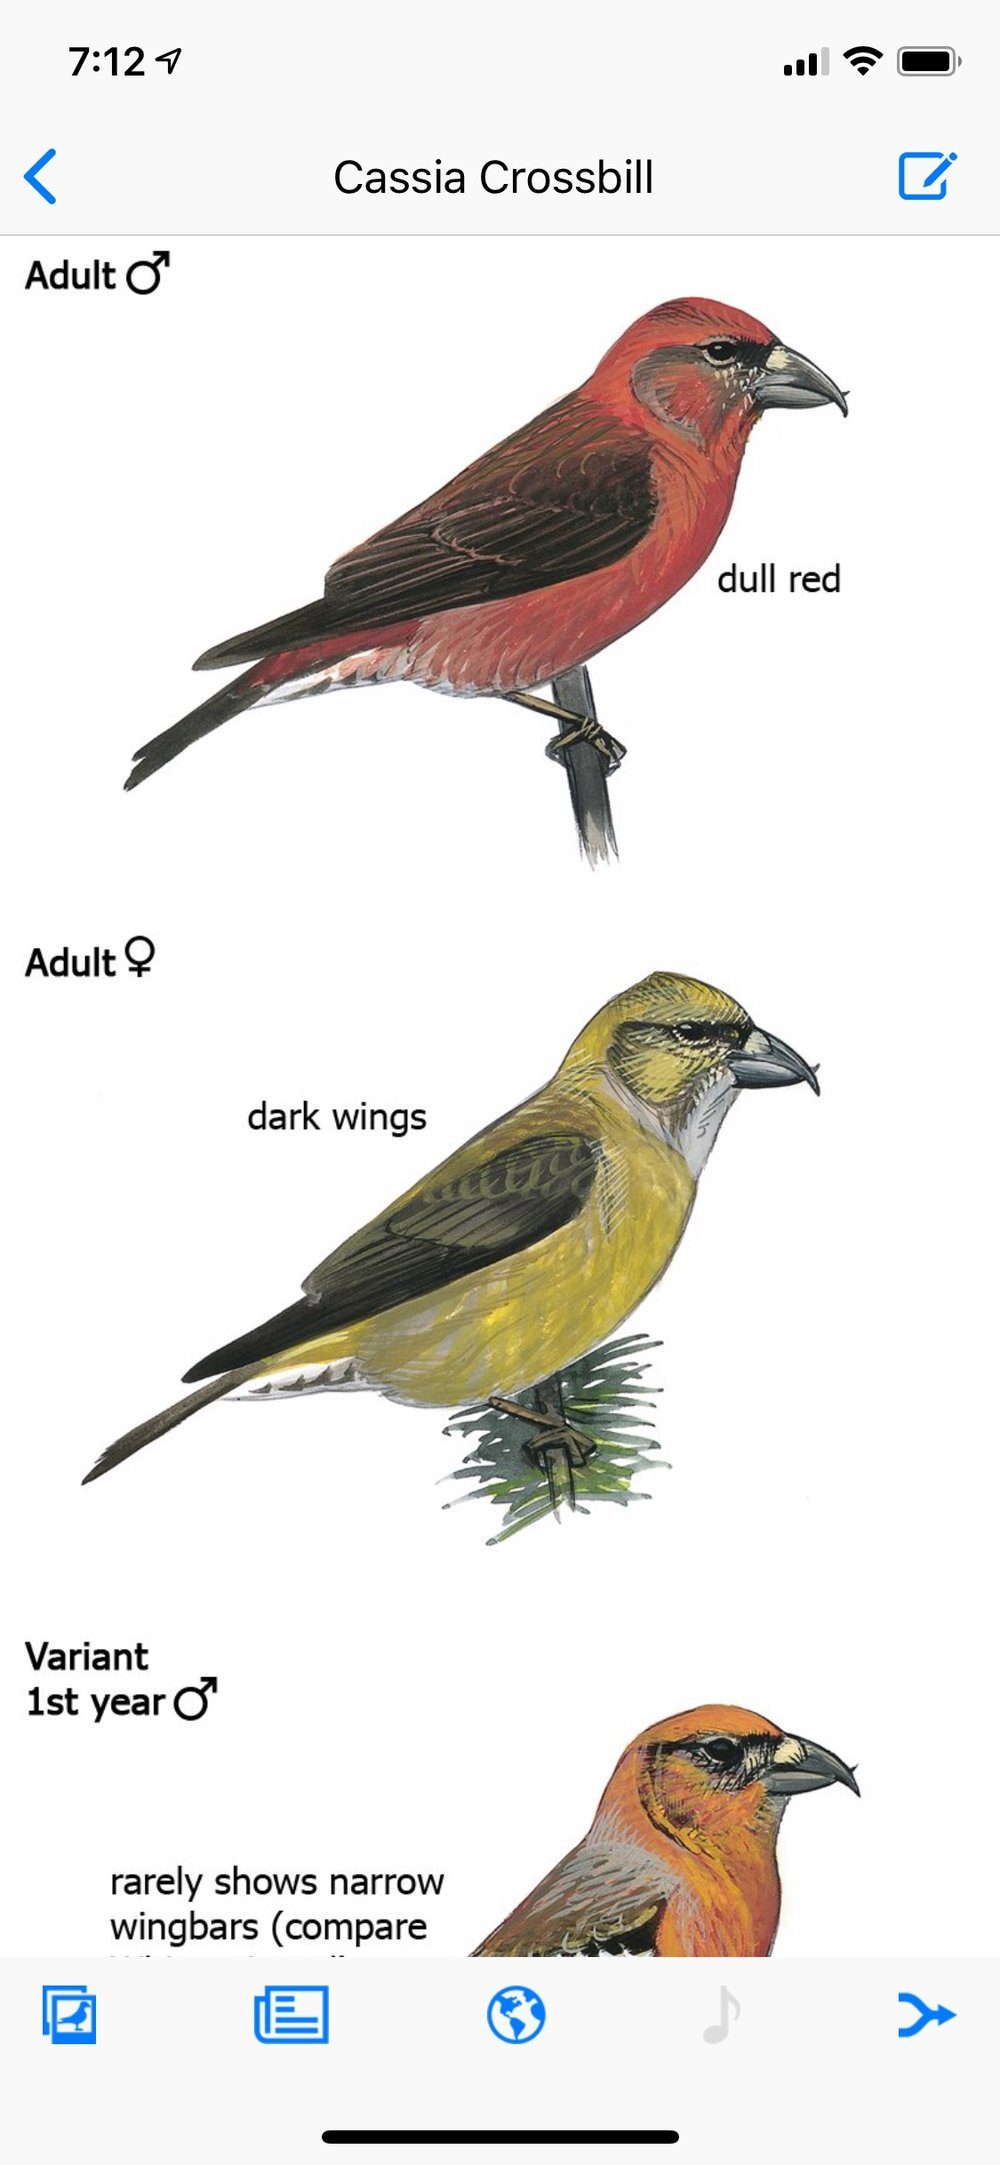 The Cassia crossbill is the same illustration as the red crossbill—because they look exactly alike. The only way to tell them apart is by call…which the Cassia doesn't have in the app.